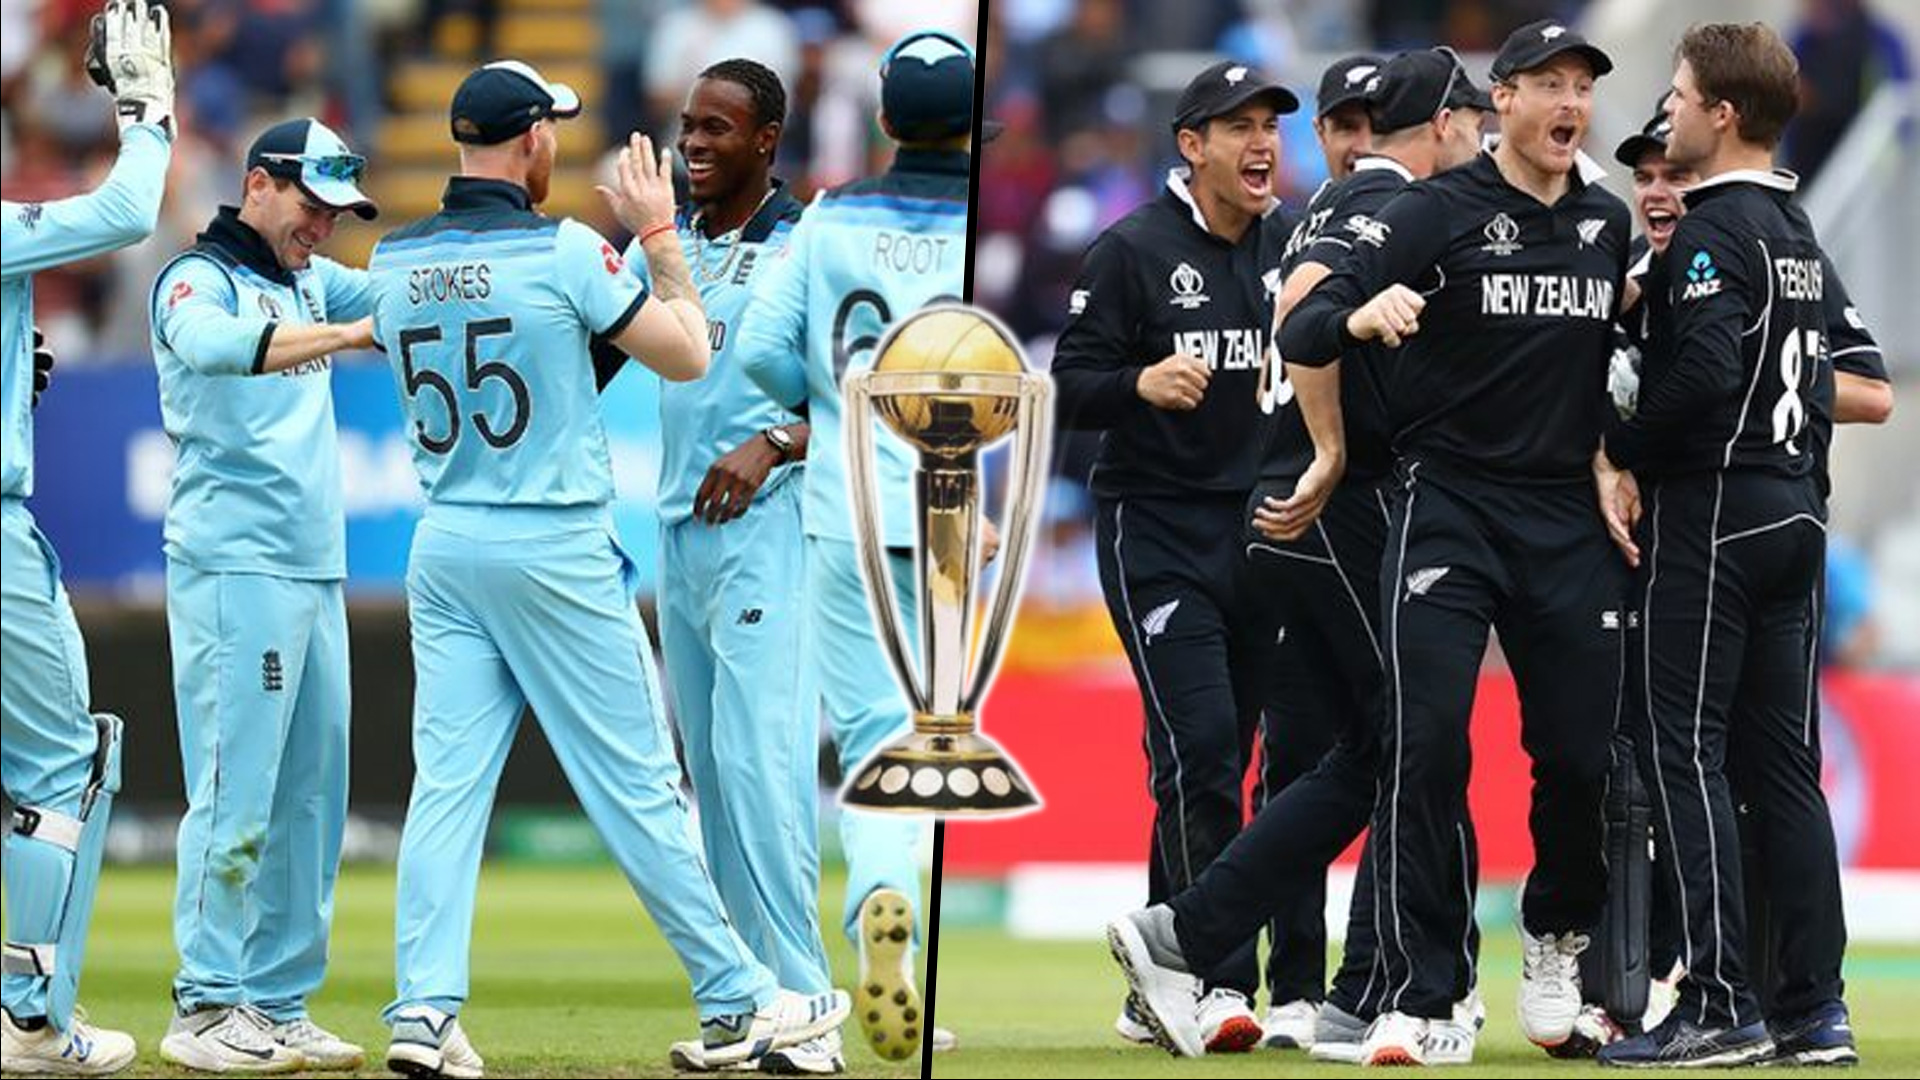 ICC Cricket World Cup 2019 : If Sentiment Workout England Will Win The Cricket World Cup